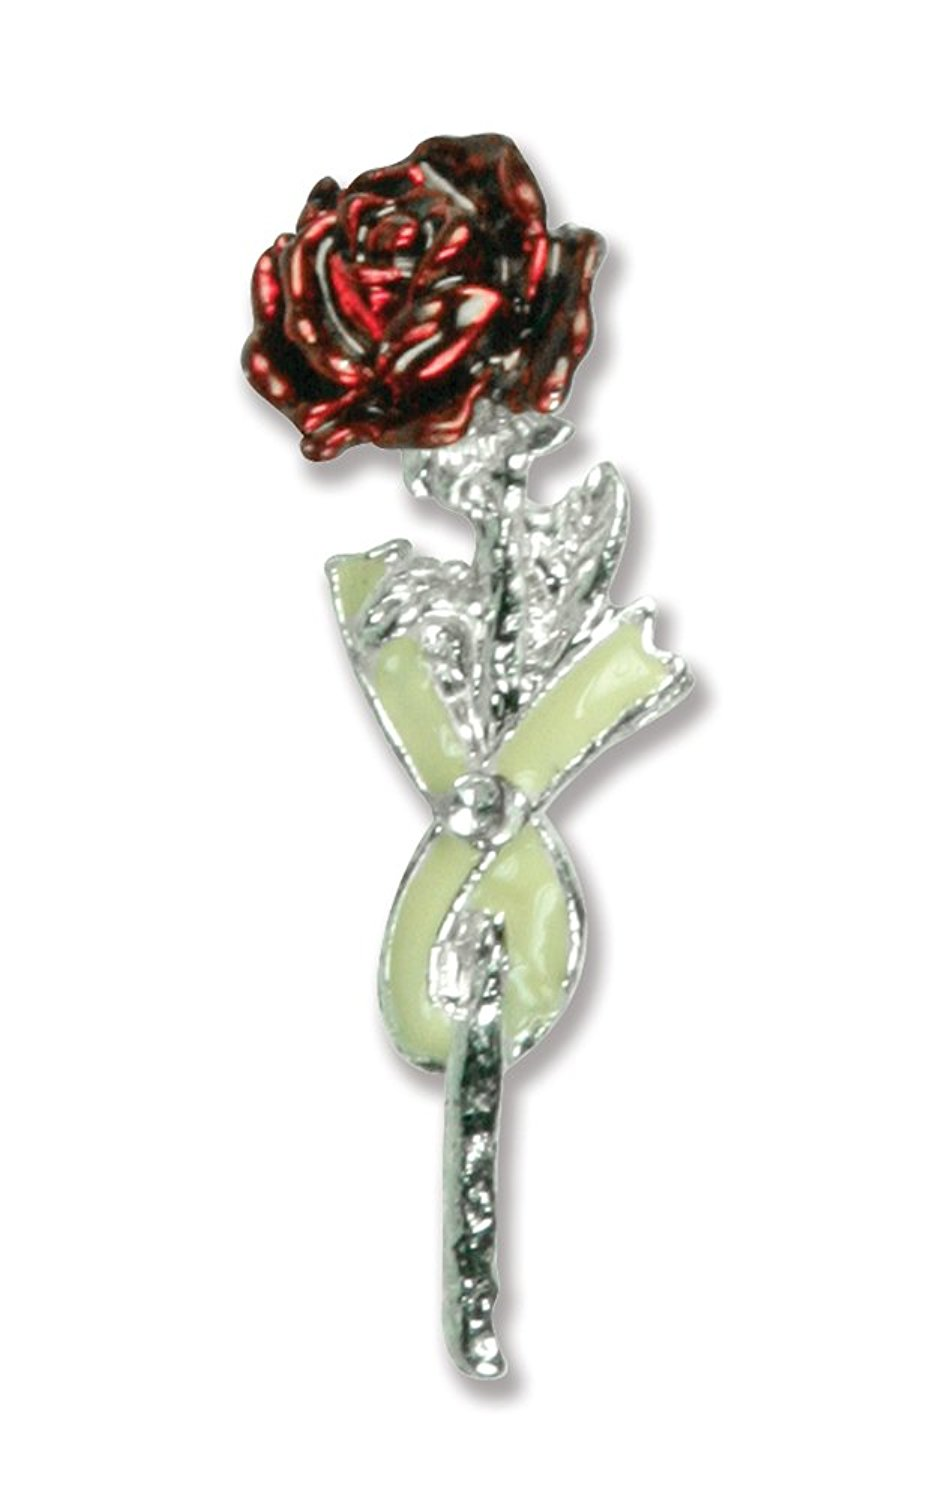 Banberry Designs I Thought of You With Love Today Memorial Pin - Red Rose Lapel Pin Gift Boxed with Sympathy Poem - Remembrance